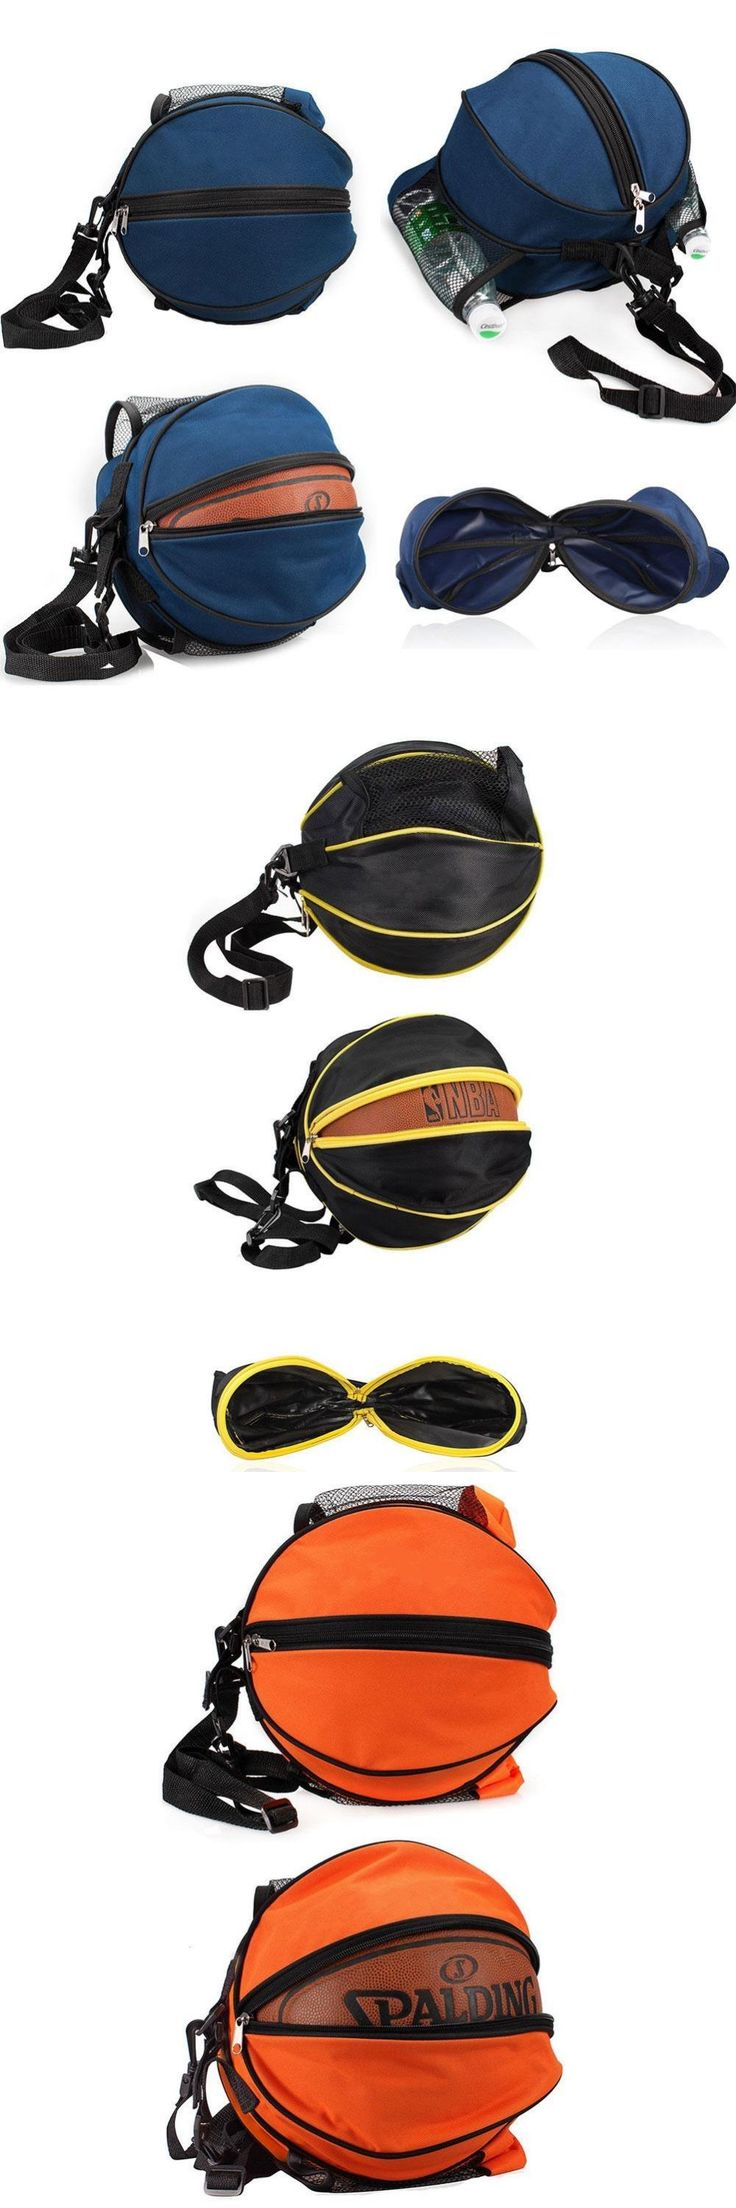 [Visit to Buy] Outdoor Sports Shoulder Soccer Ball Bags Nylon Training Equipment Accessories Kids Football kits Volleyball Basketball Bag #Advertisement